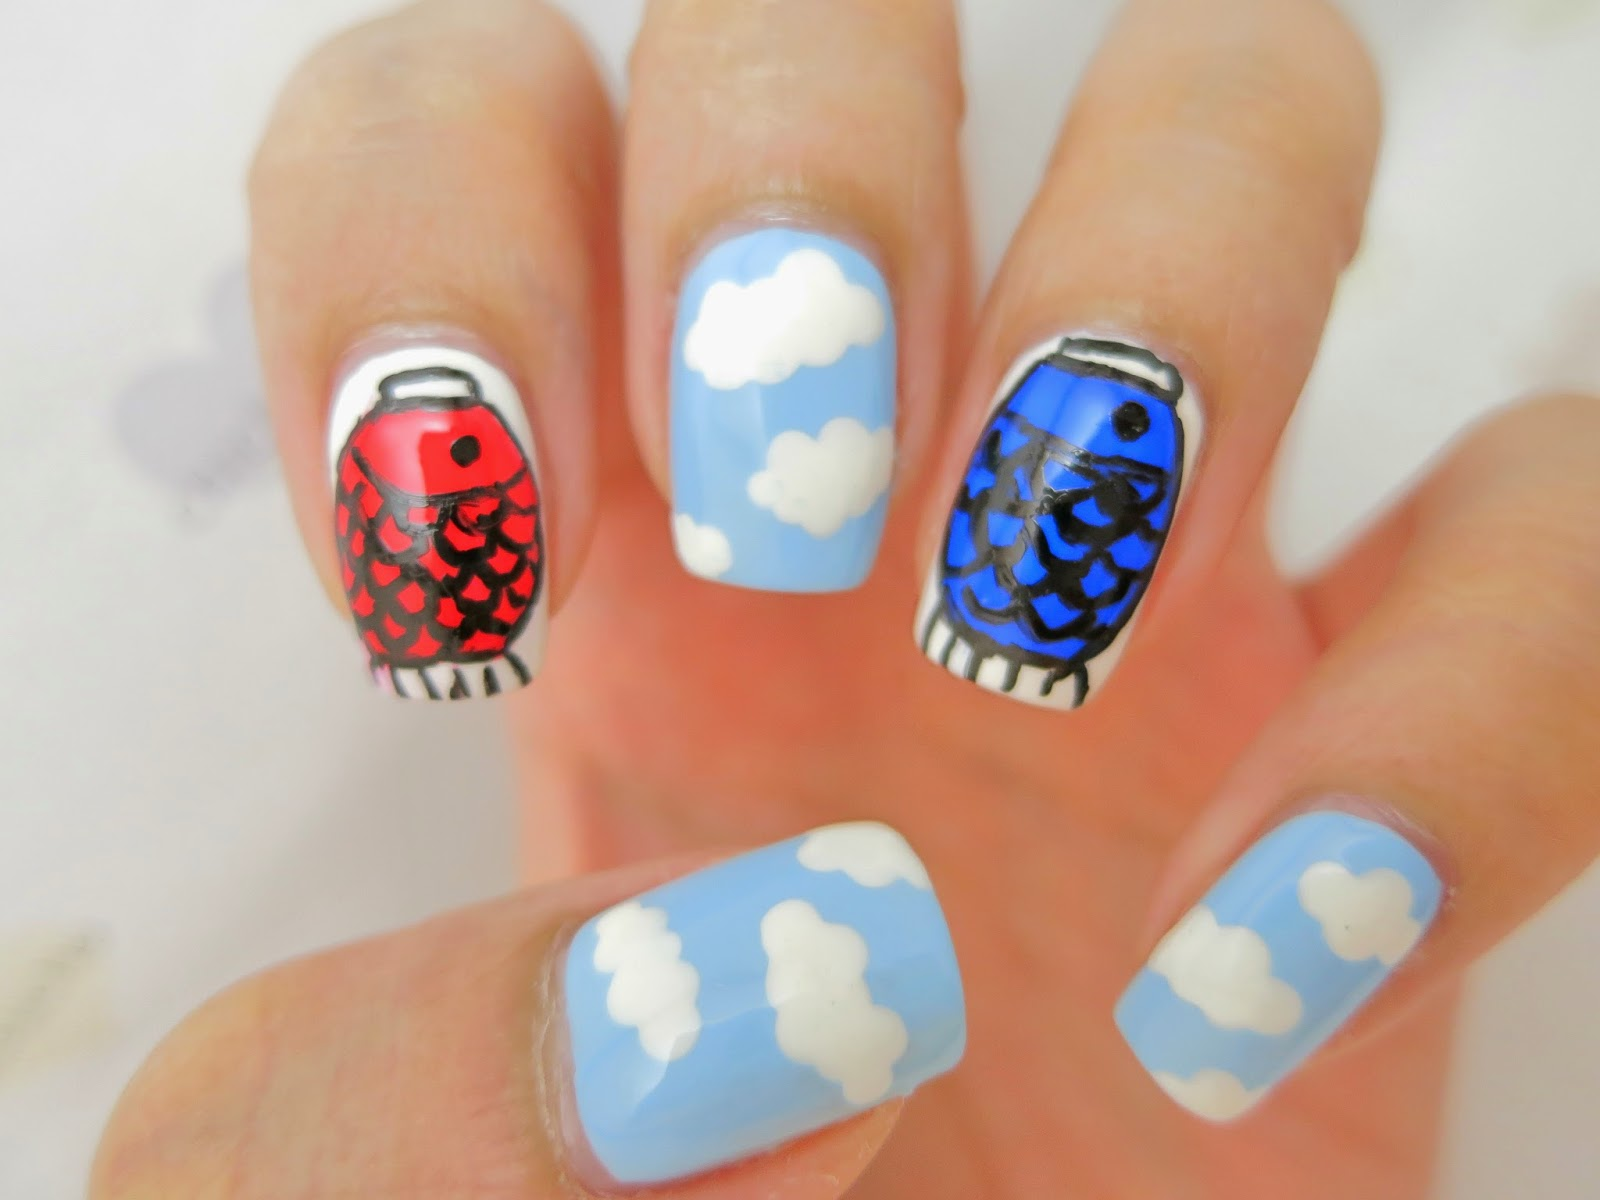 Koinobori Carp Streamers For Childrens Day Nail Art Chichicho